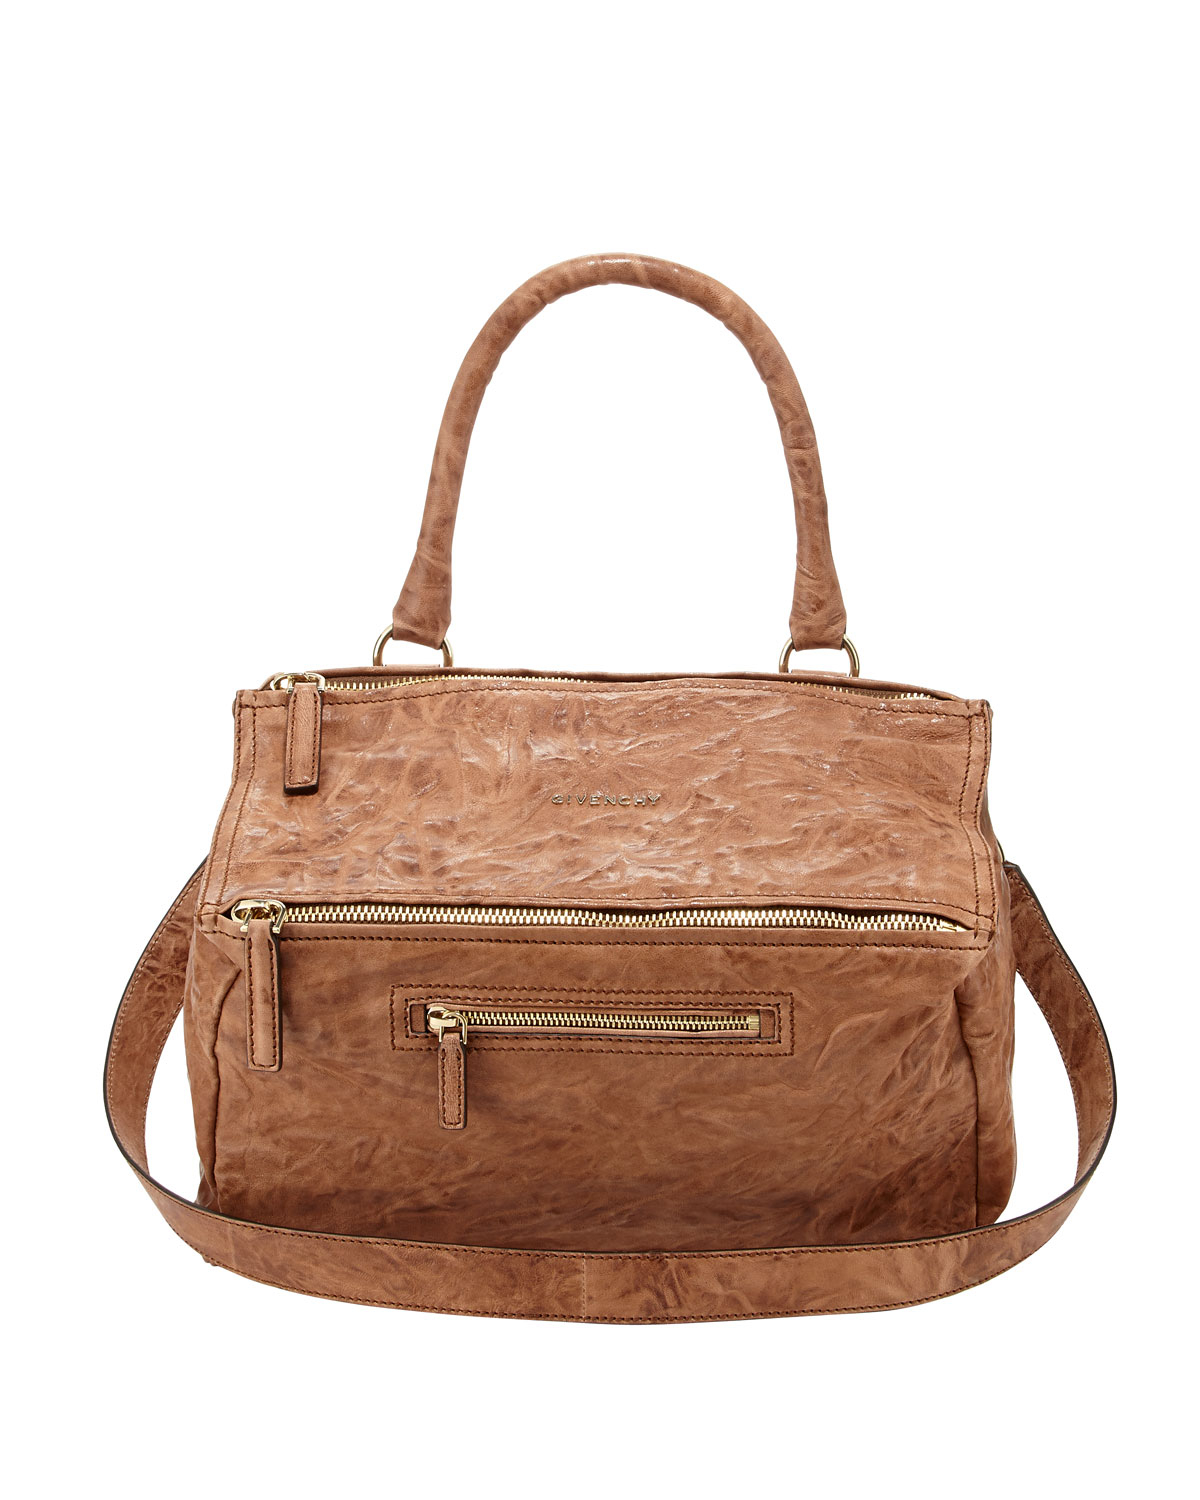 Givenchy Pandora Medium Old Pepe Satchel Bag Medium Brown ...